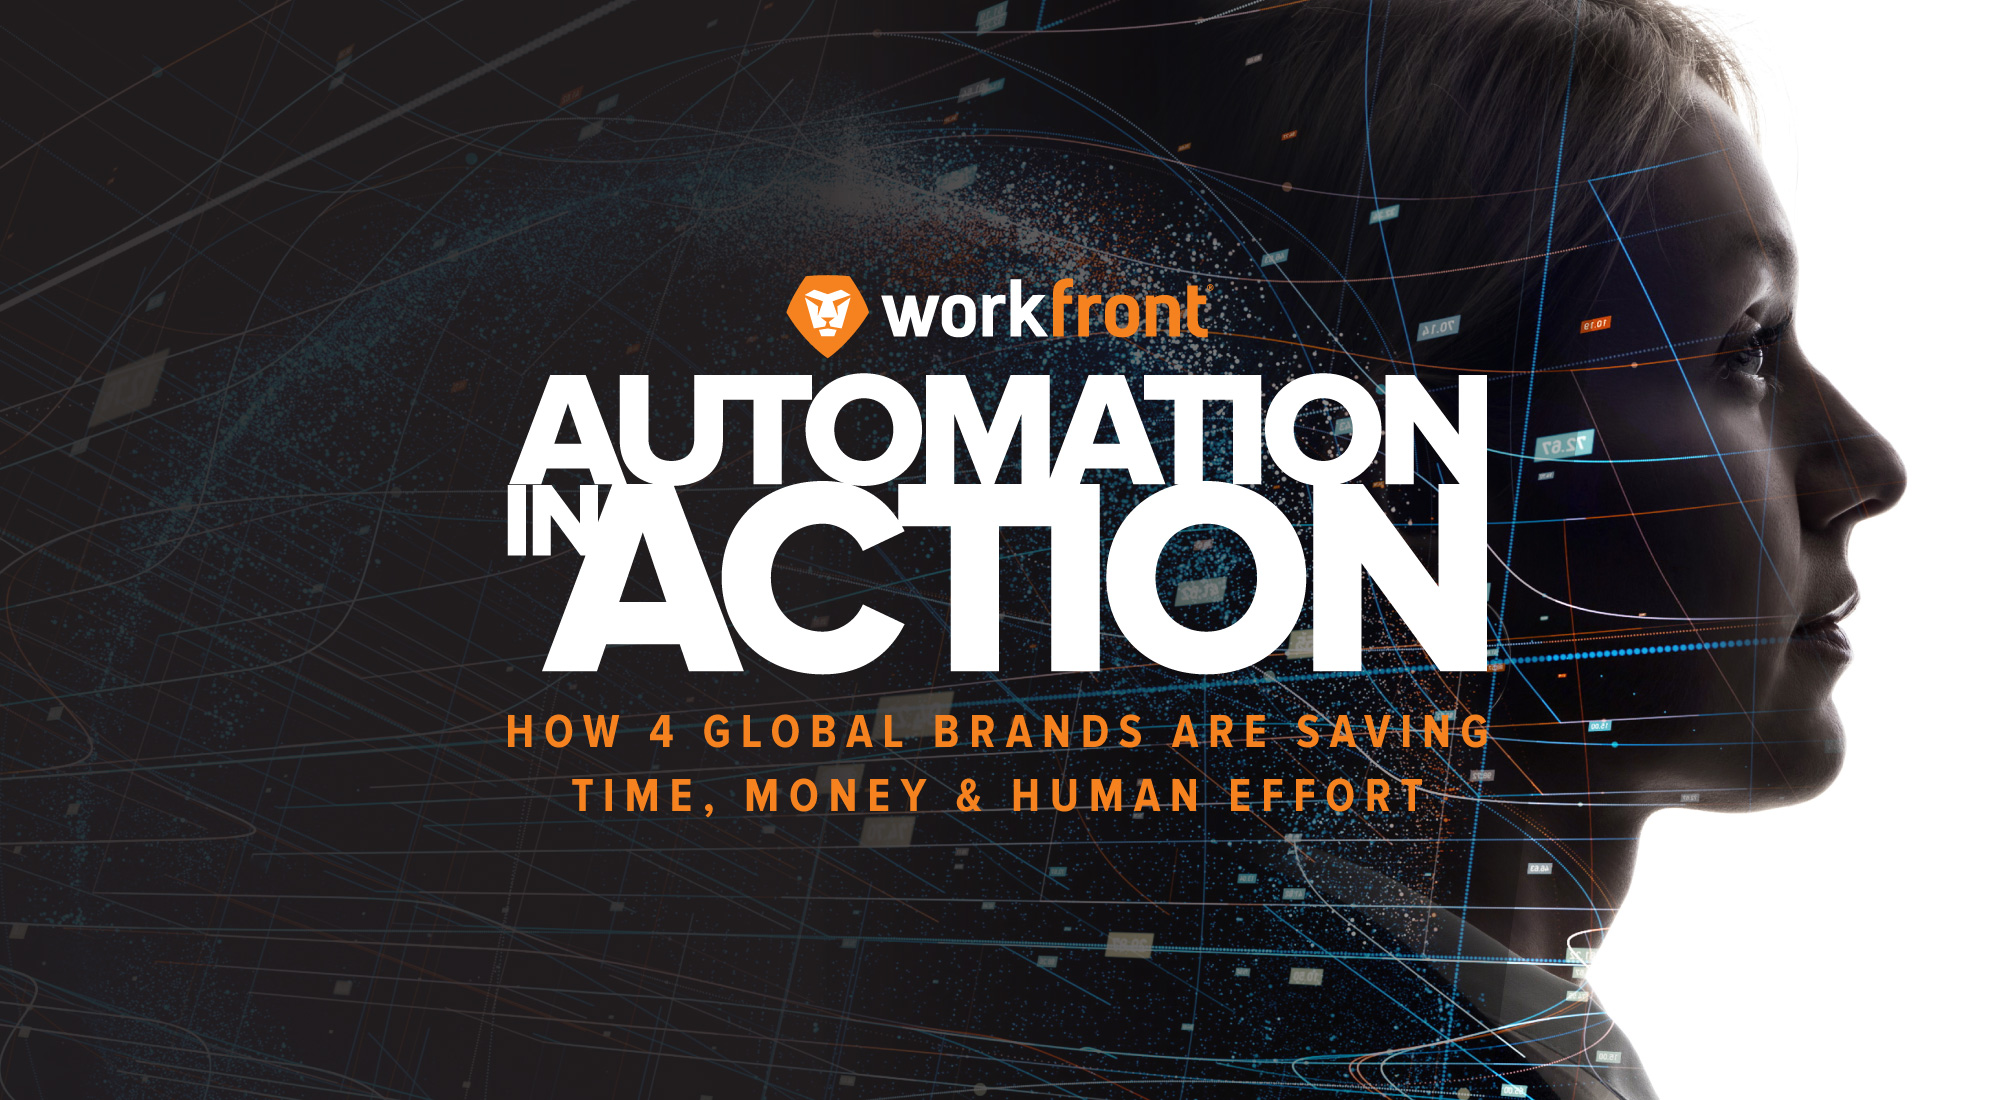 Automation in Action: How 4 Global Brands are Saving Time, Money & Human Effort Primary tabs